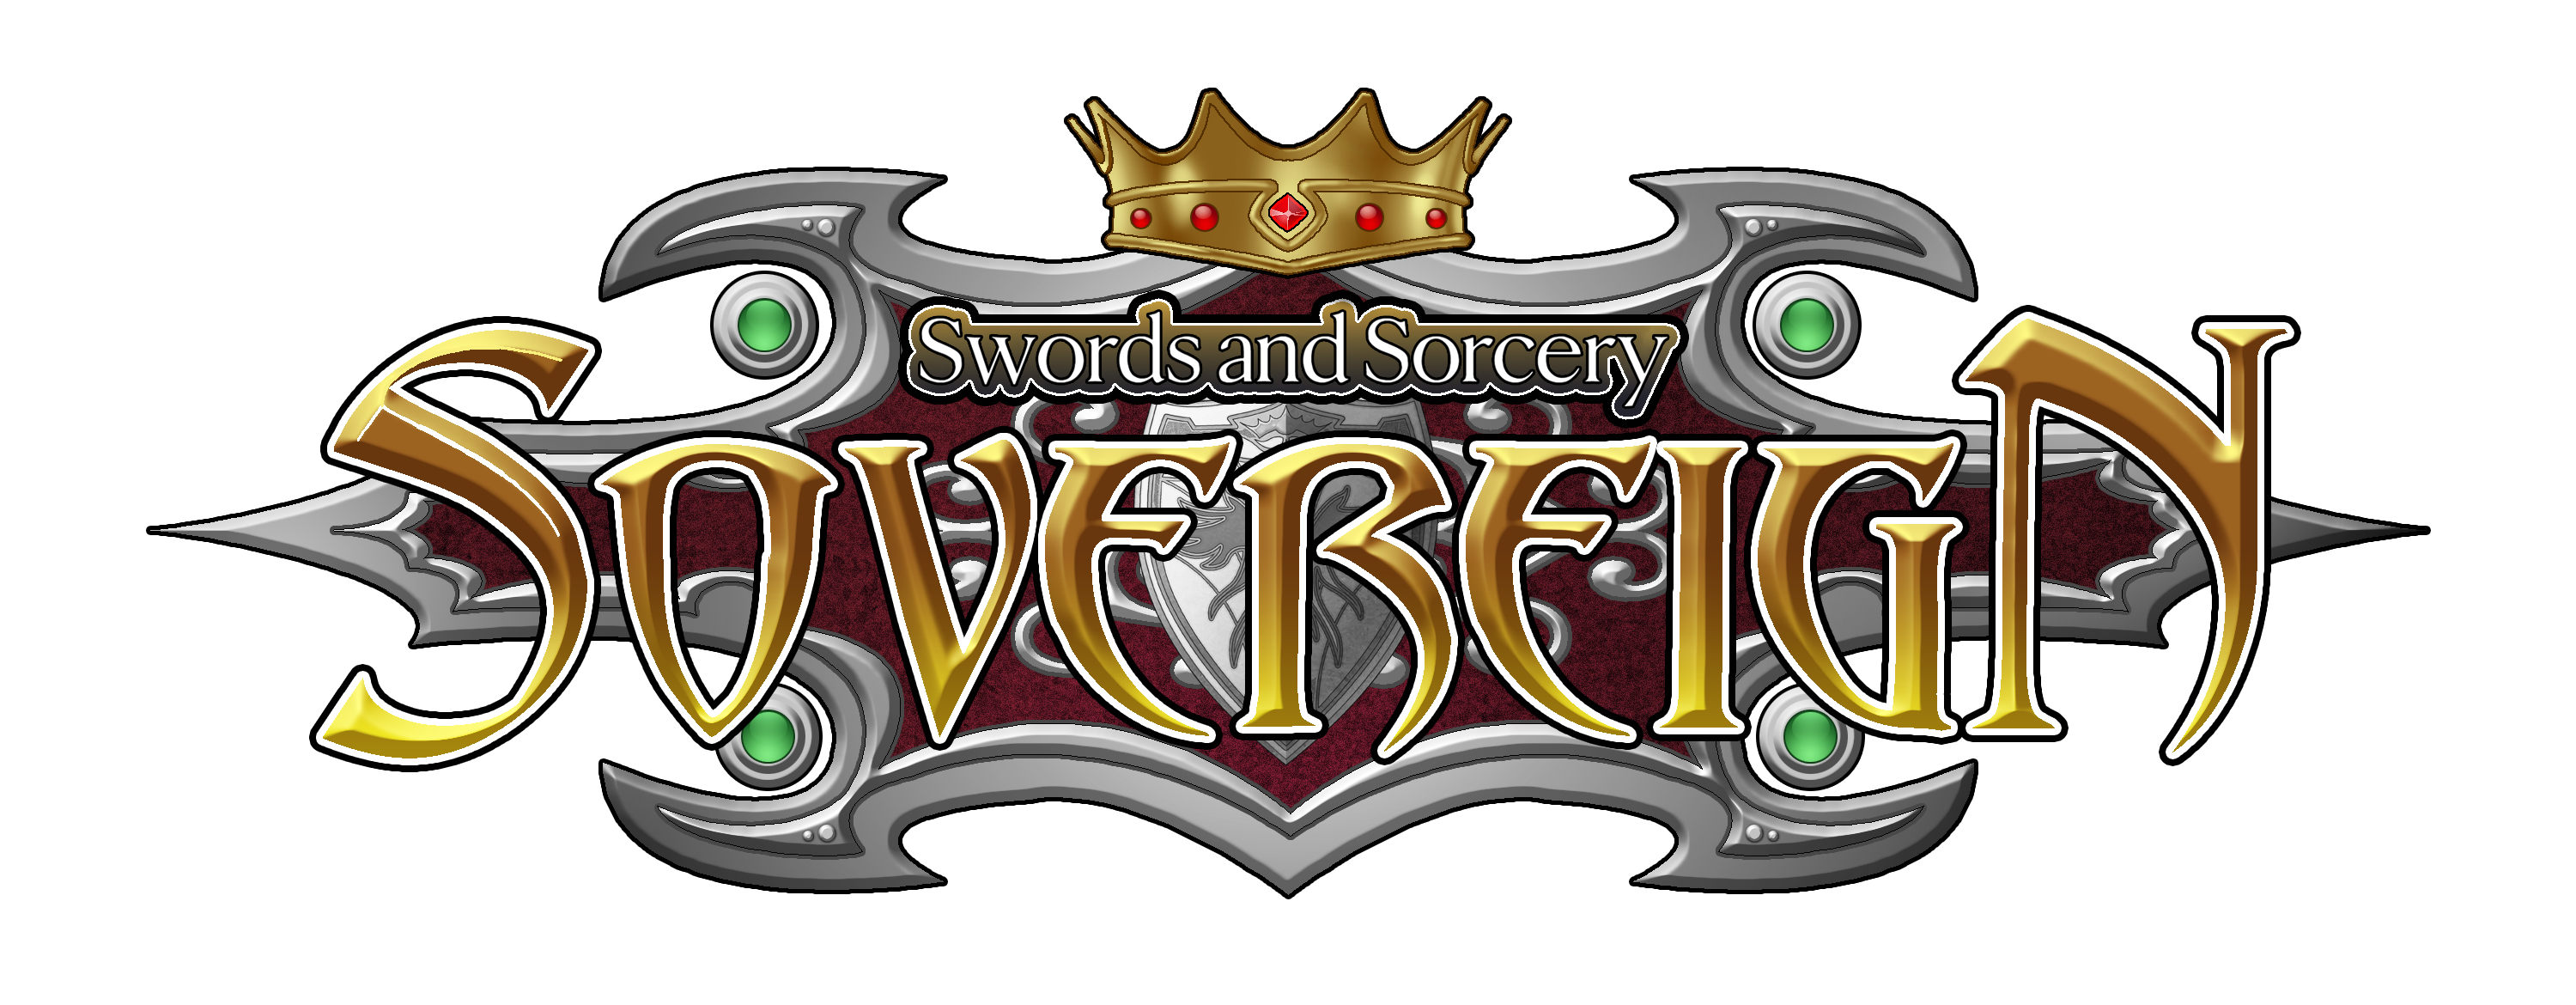 Swords and Sorcery - Sovereign